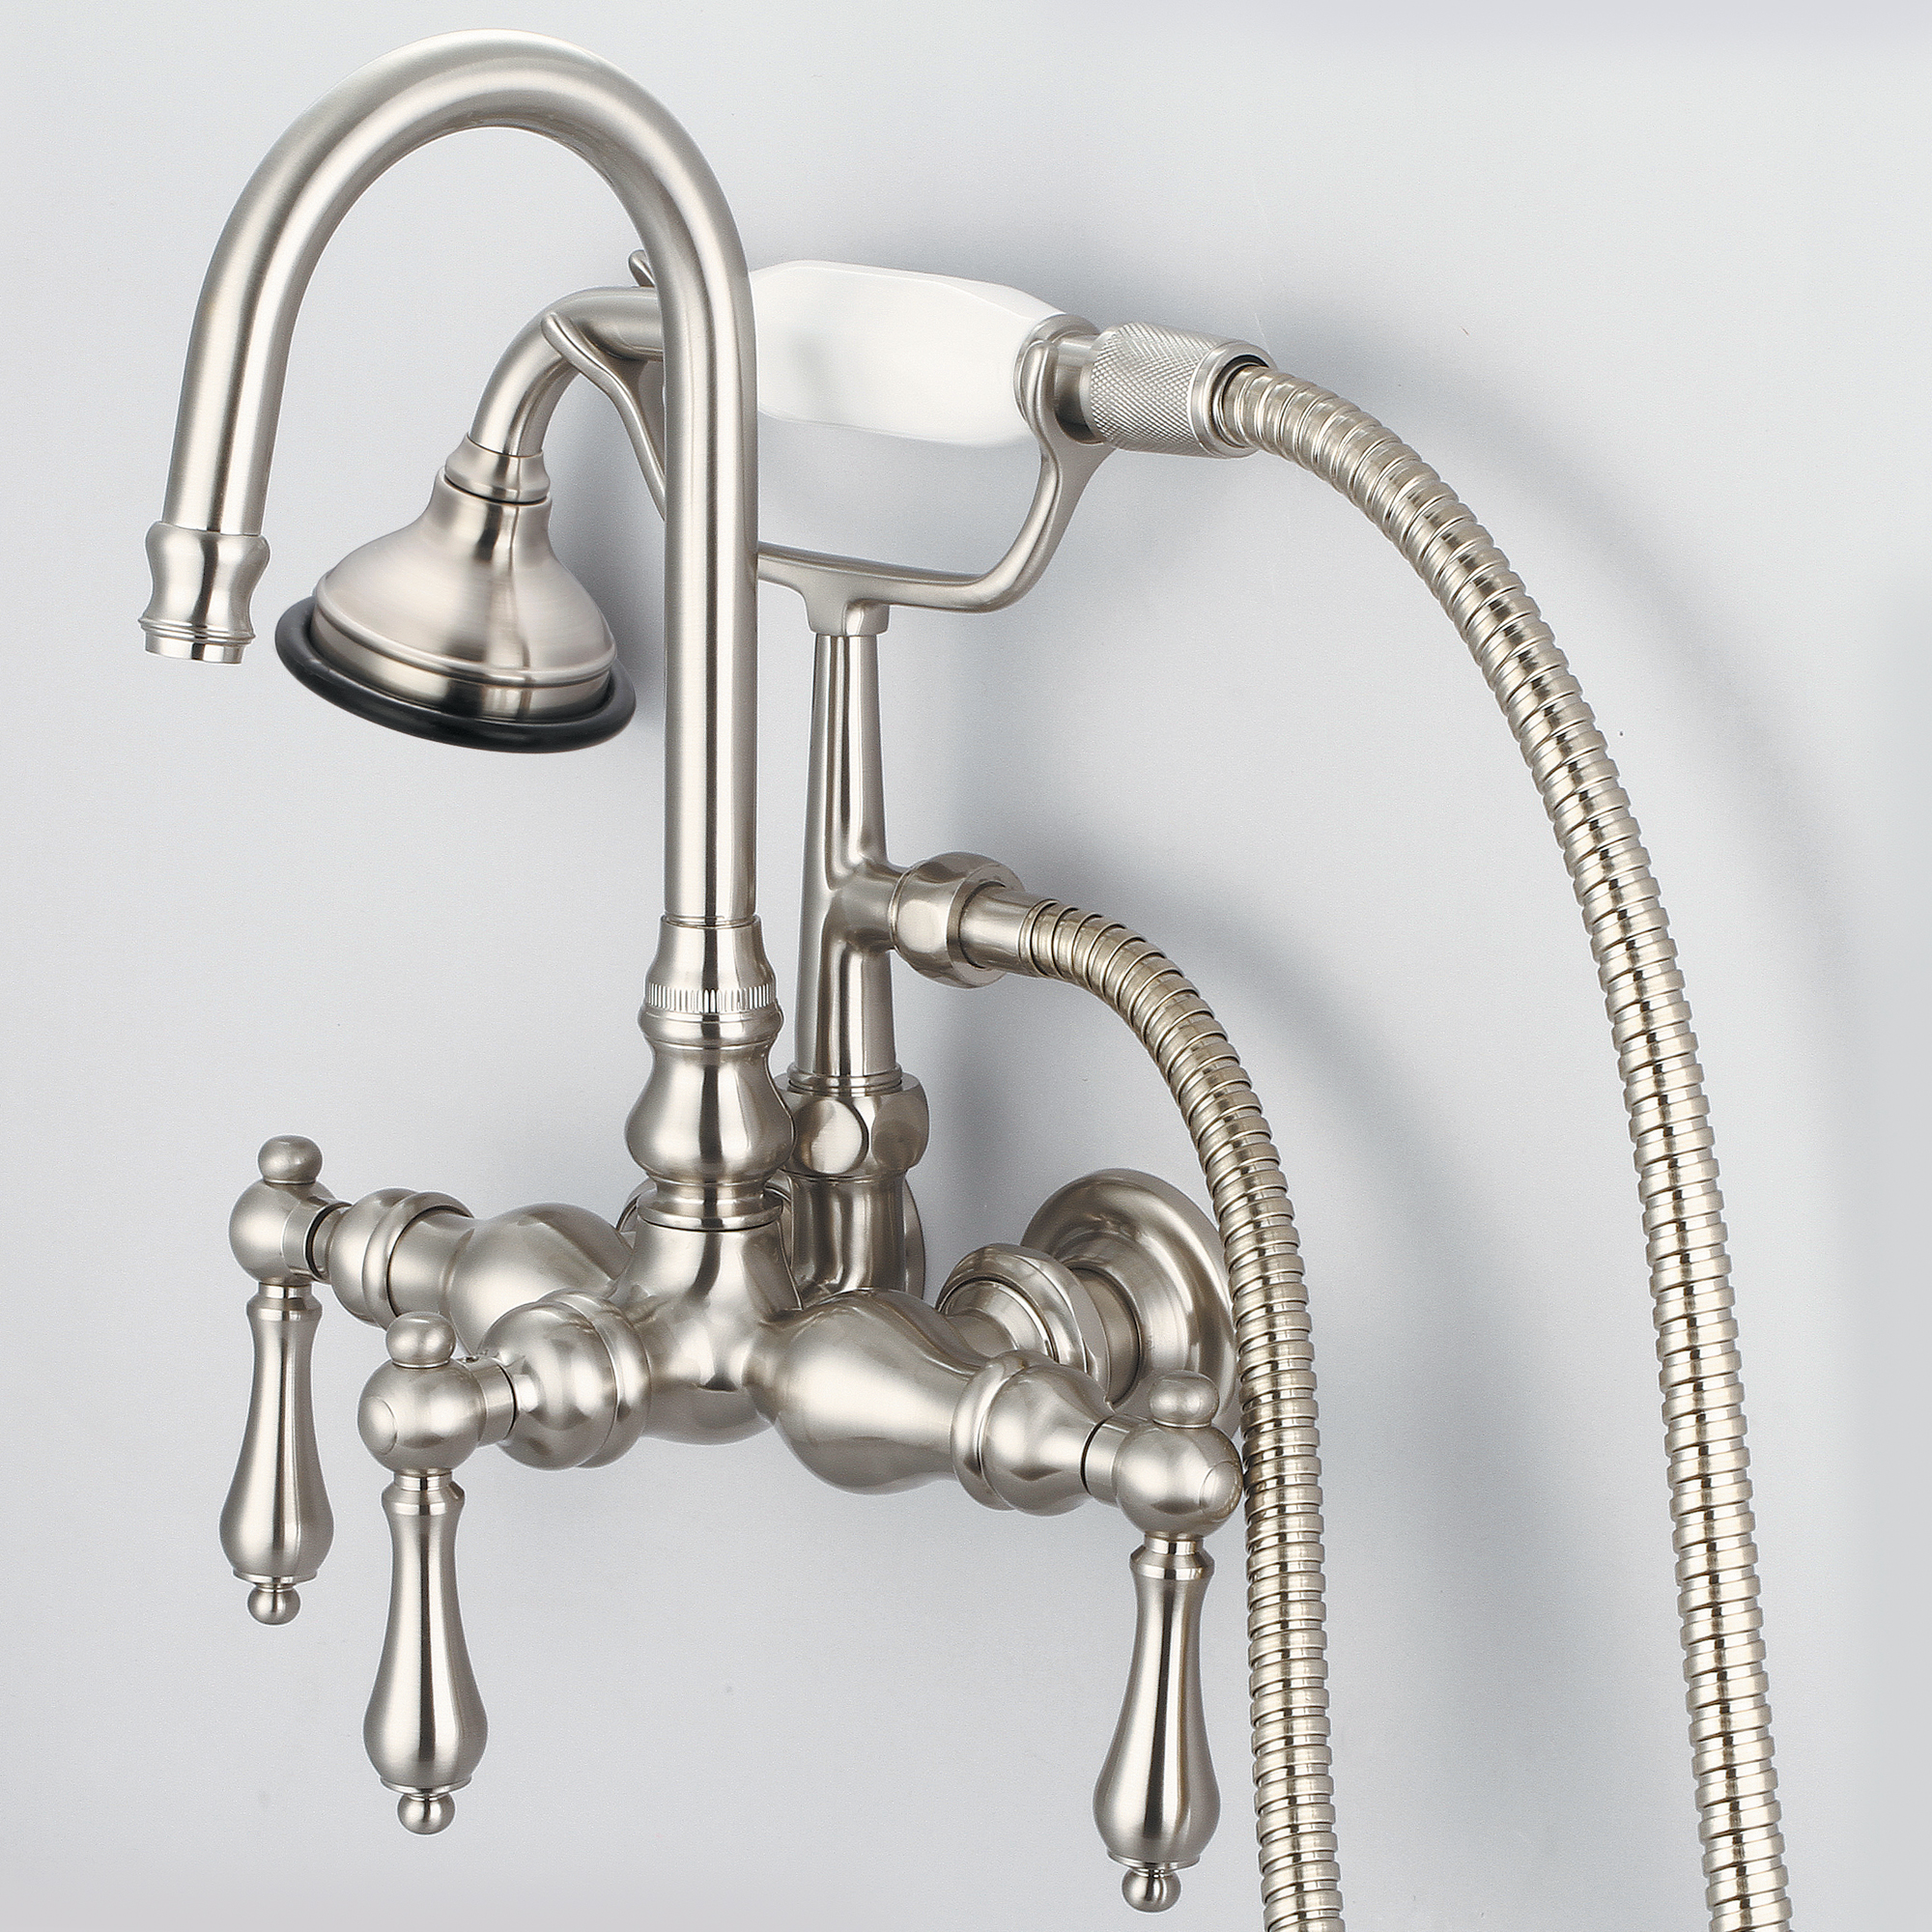 Vintage Classic 3.375 Inch Center Wall Mount Tub Faucet With Gooseneck Spout, Straight Wall Connector & Handheld Shower in Brushed Nickel Finish With Metal Lever Handles Without Labels